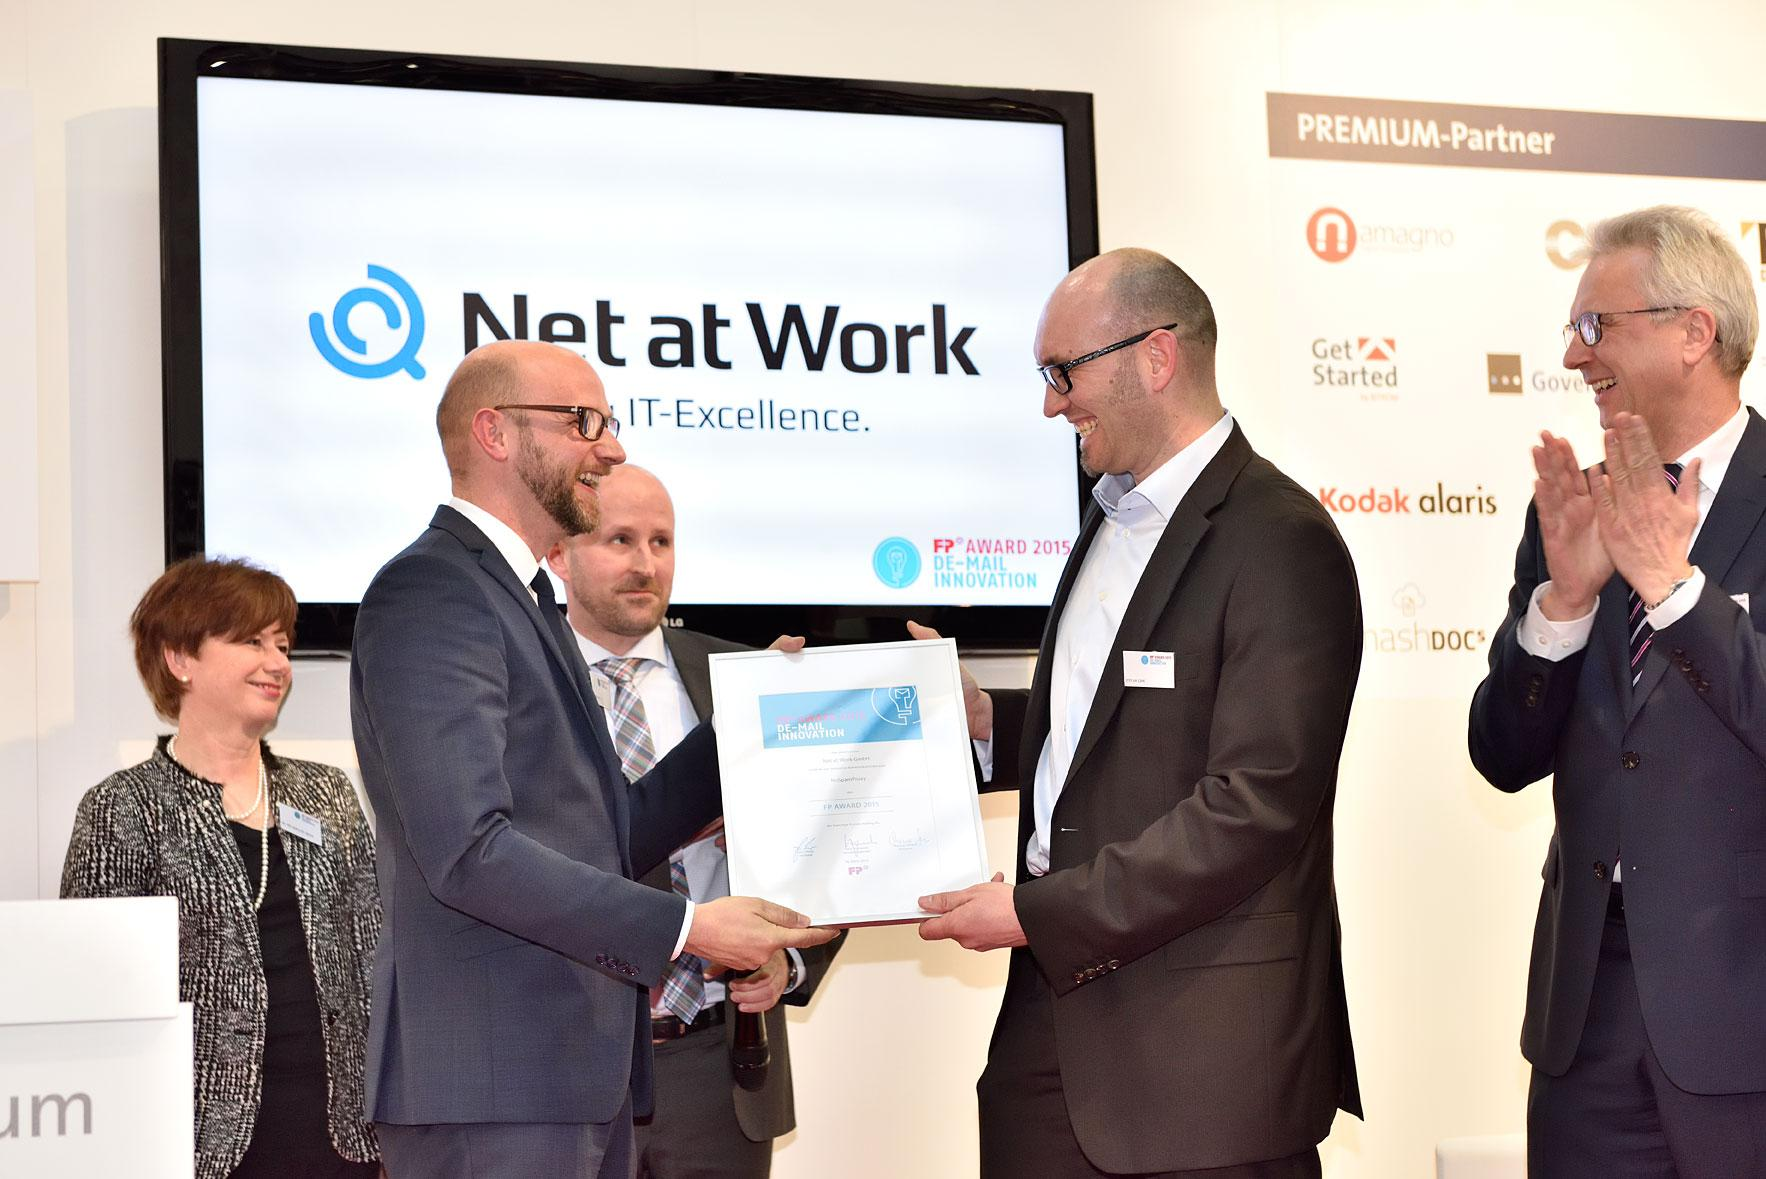 fb-award-netatwork